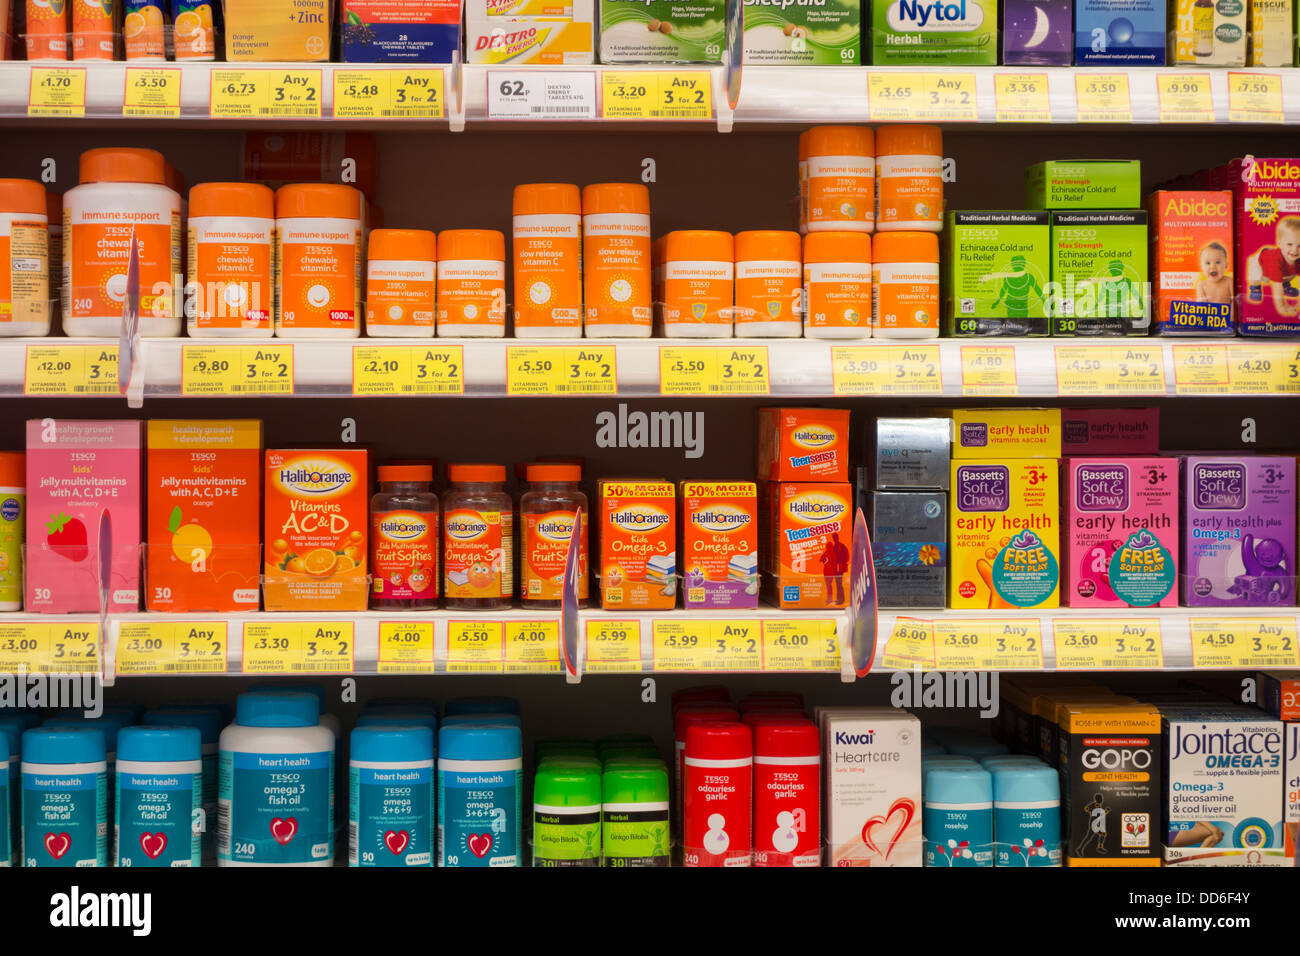 En affichage vitamines supermarché Tesco Photo Stock